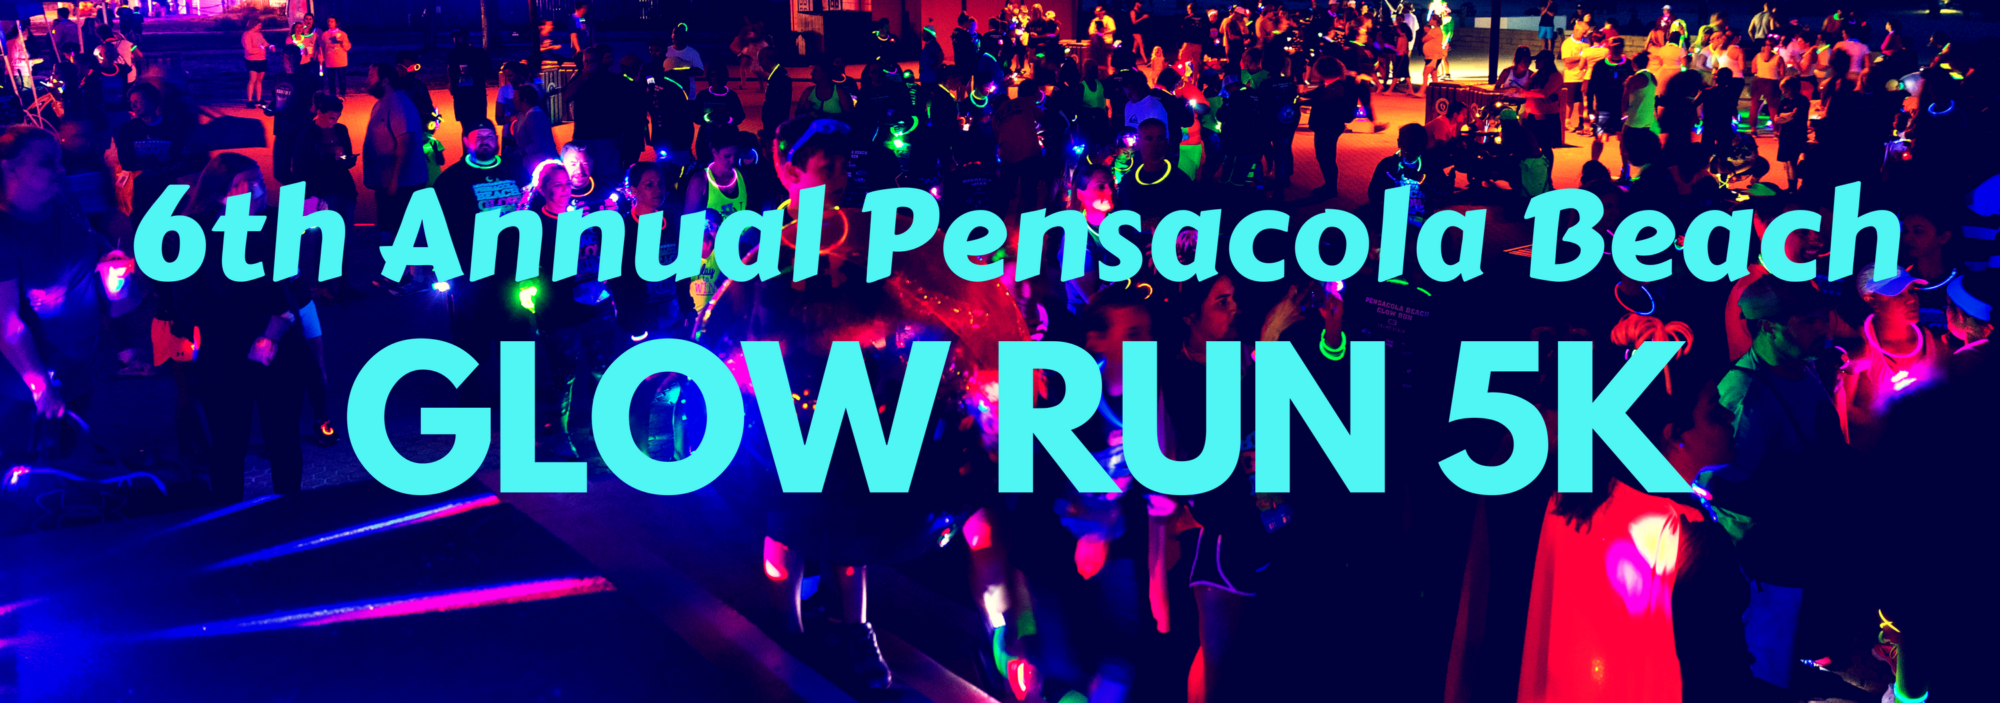 Glow Run Web Header